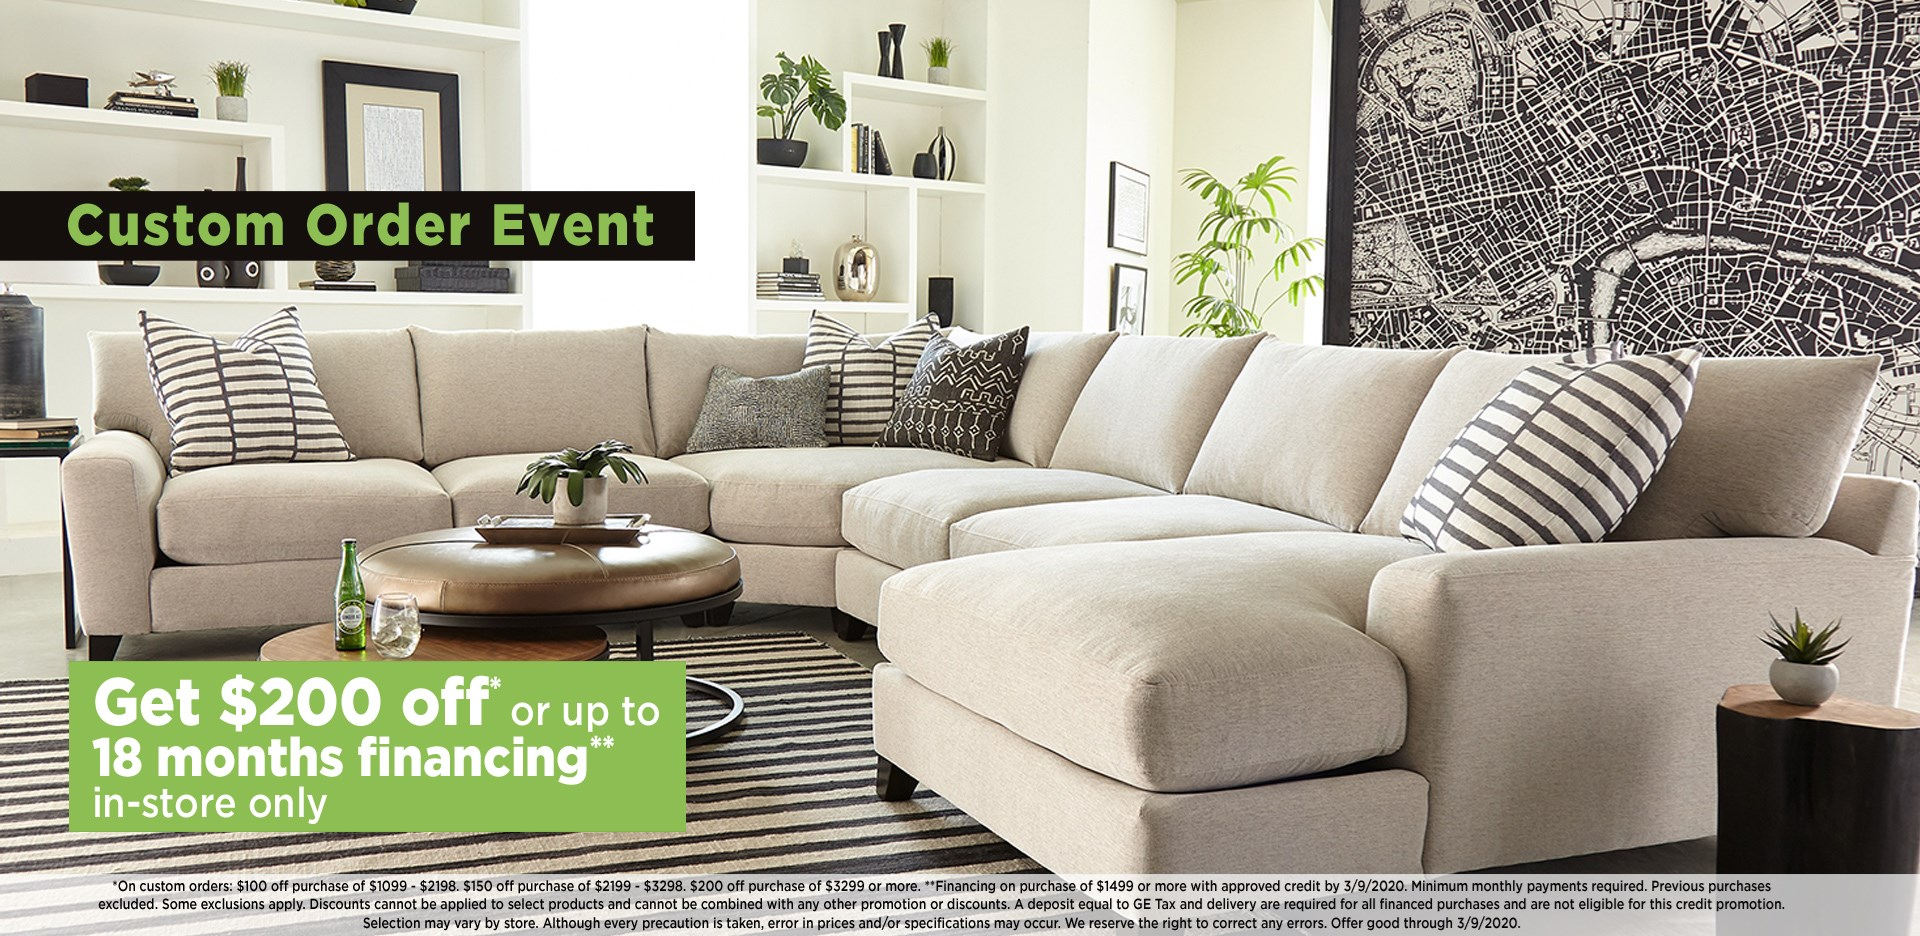 Get $200 off or up to 18 months financing; see store for details